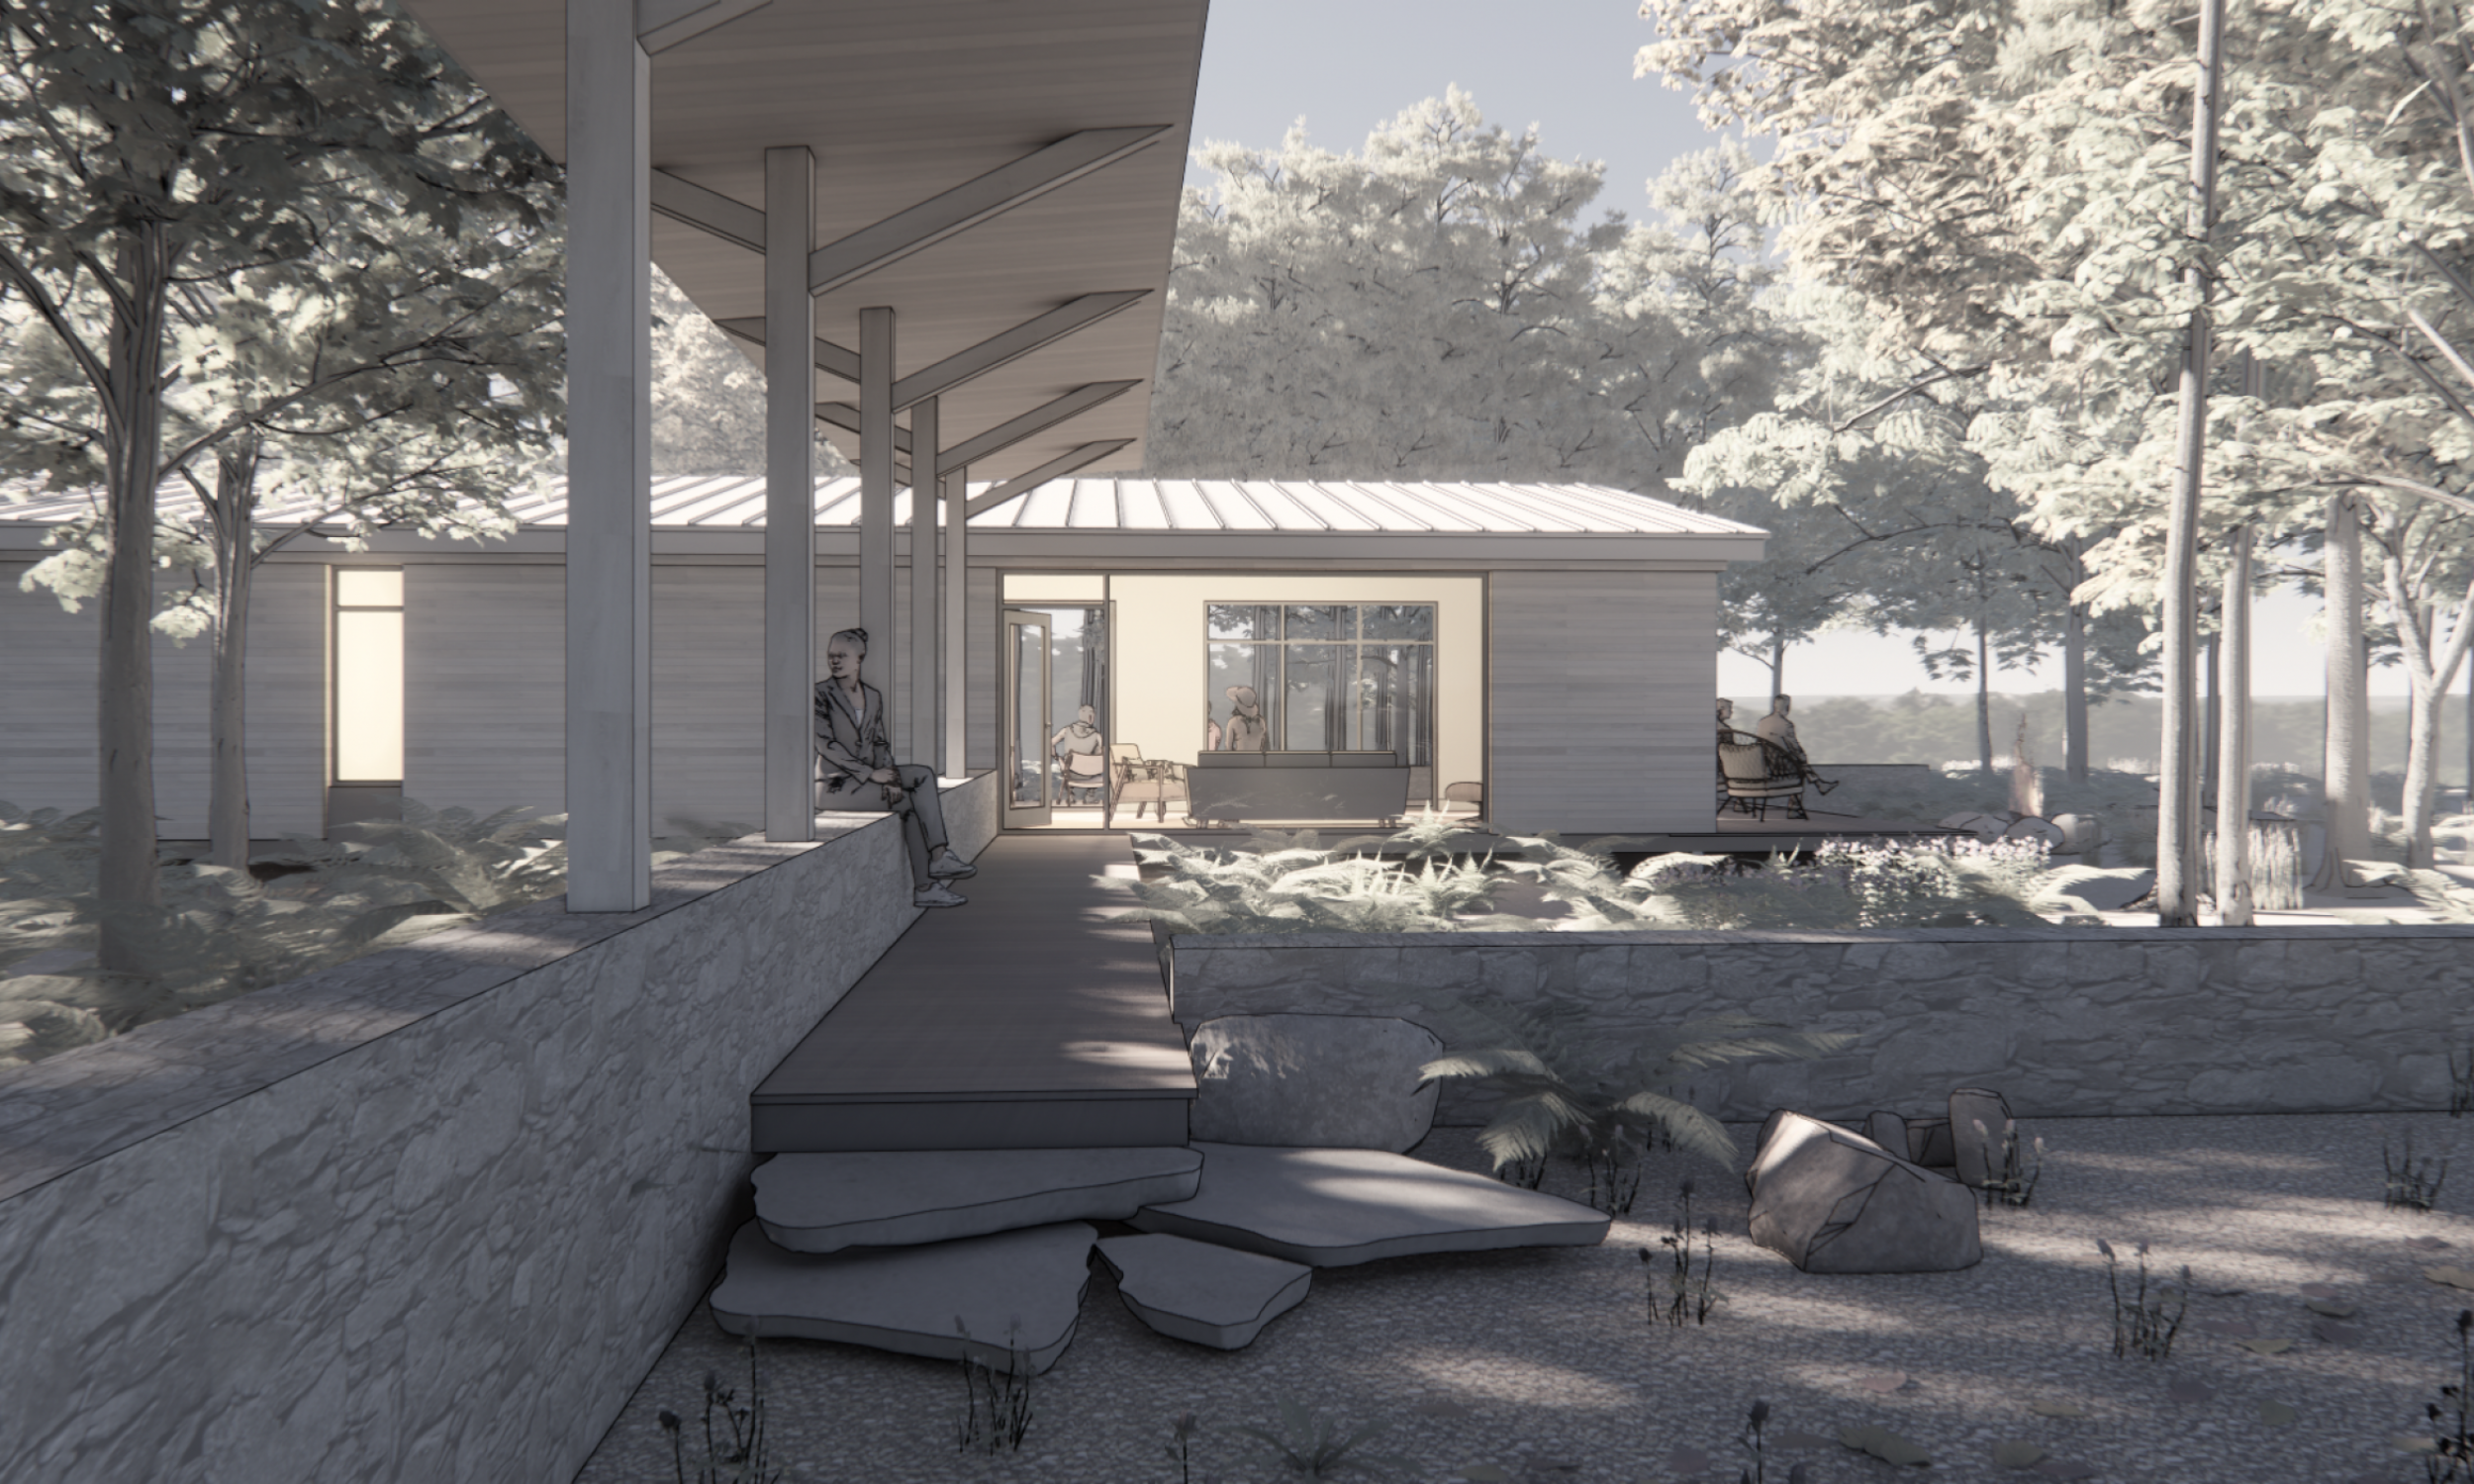 Maine Architect, Sustainable design, Natural materials, Prefabricated construction